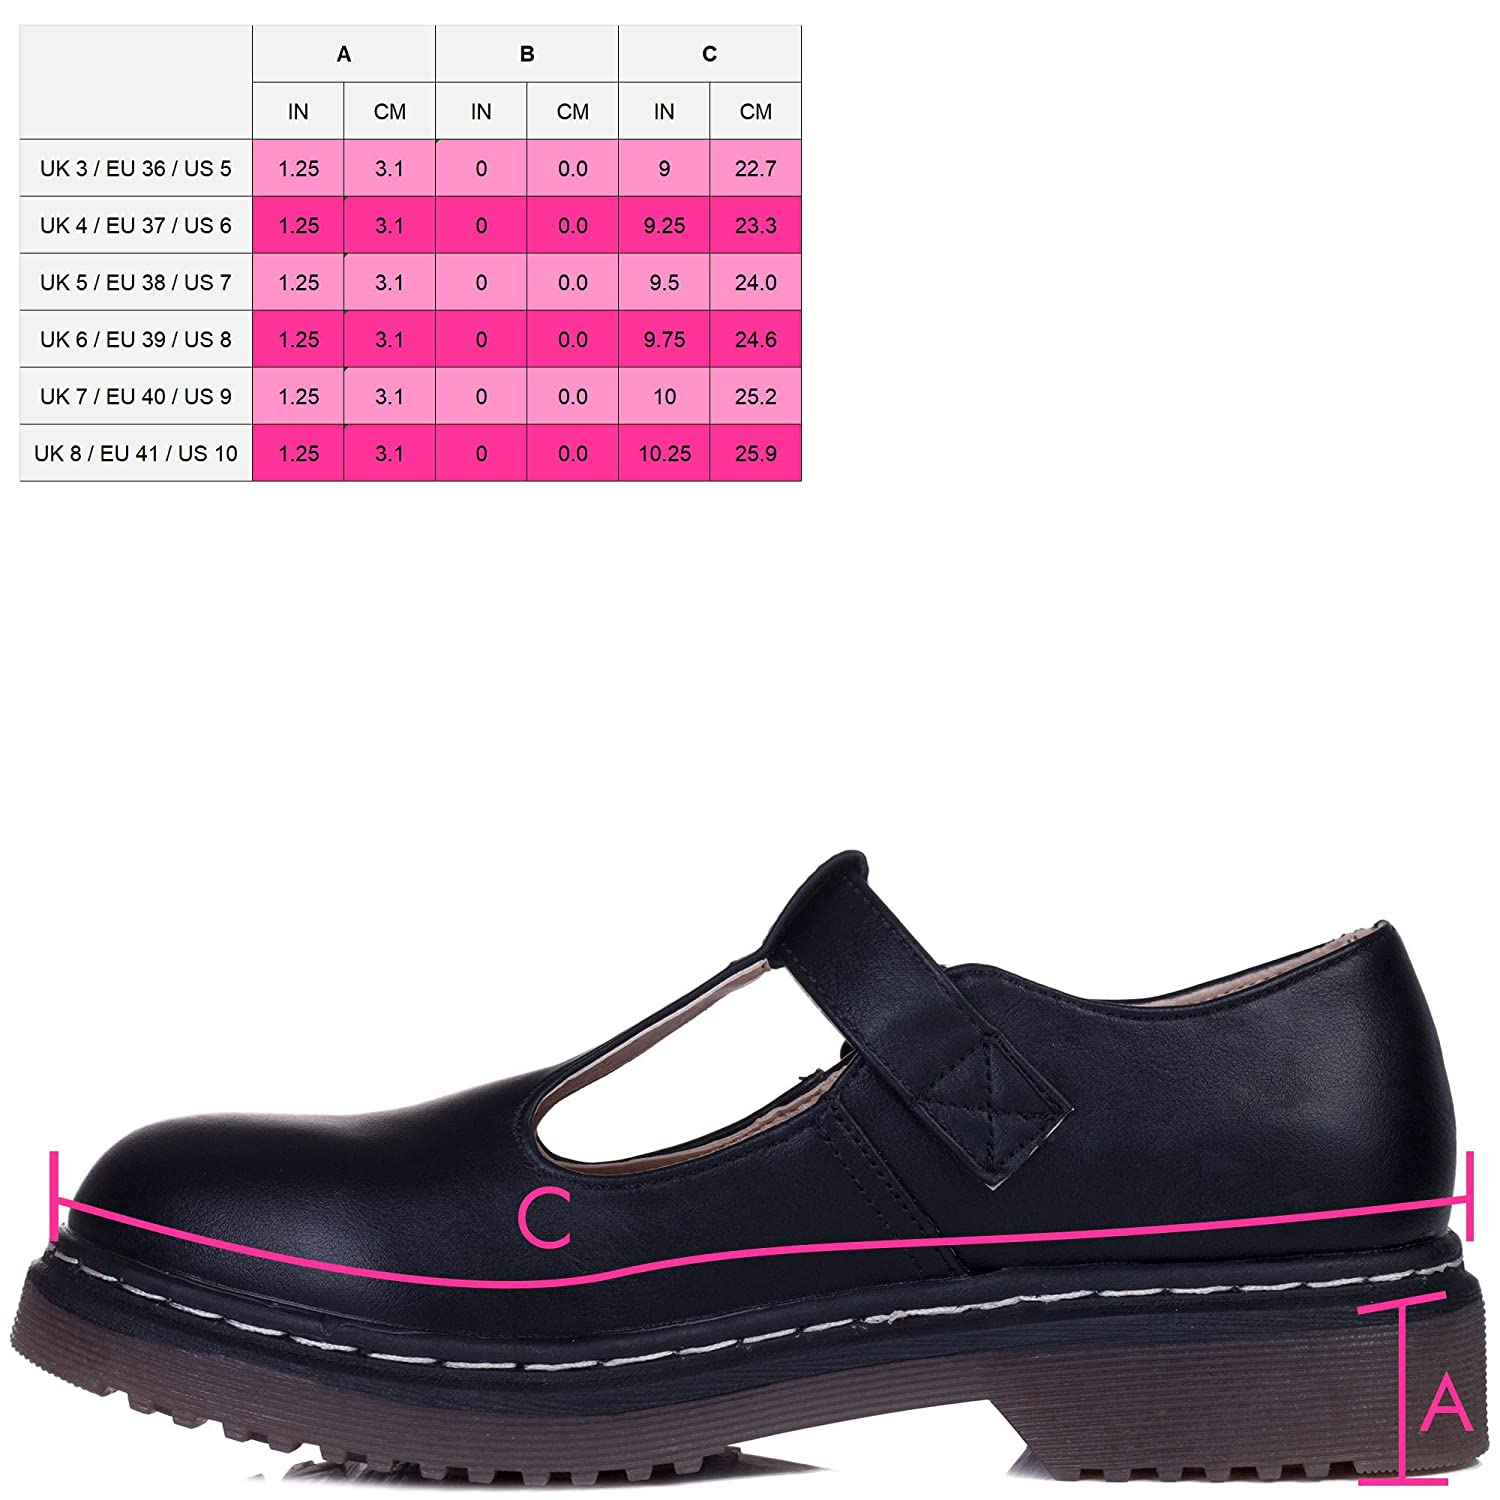 SPYLOVEBUY Snatched Womens Adjustable Buckle Flat Shoes